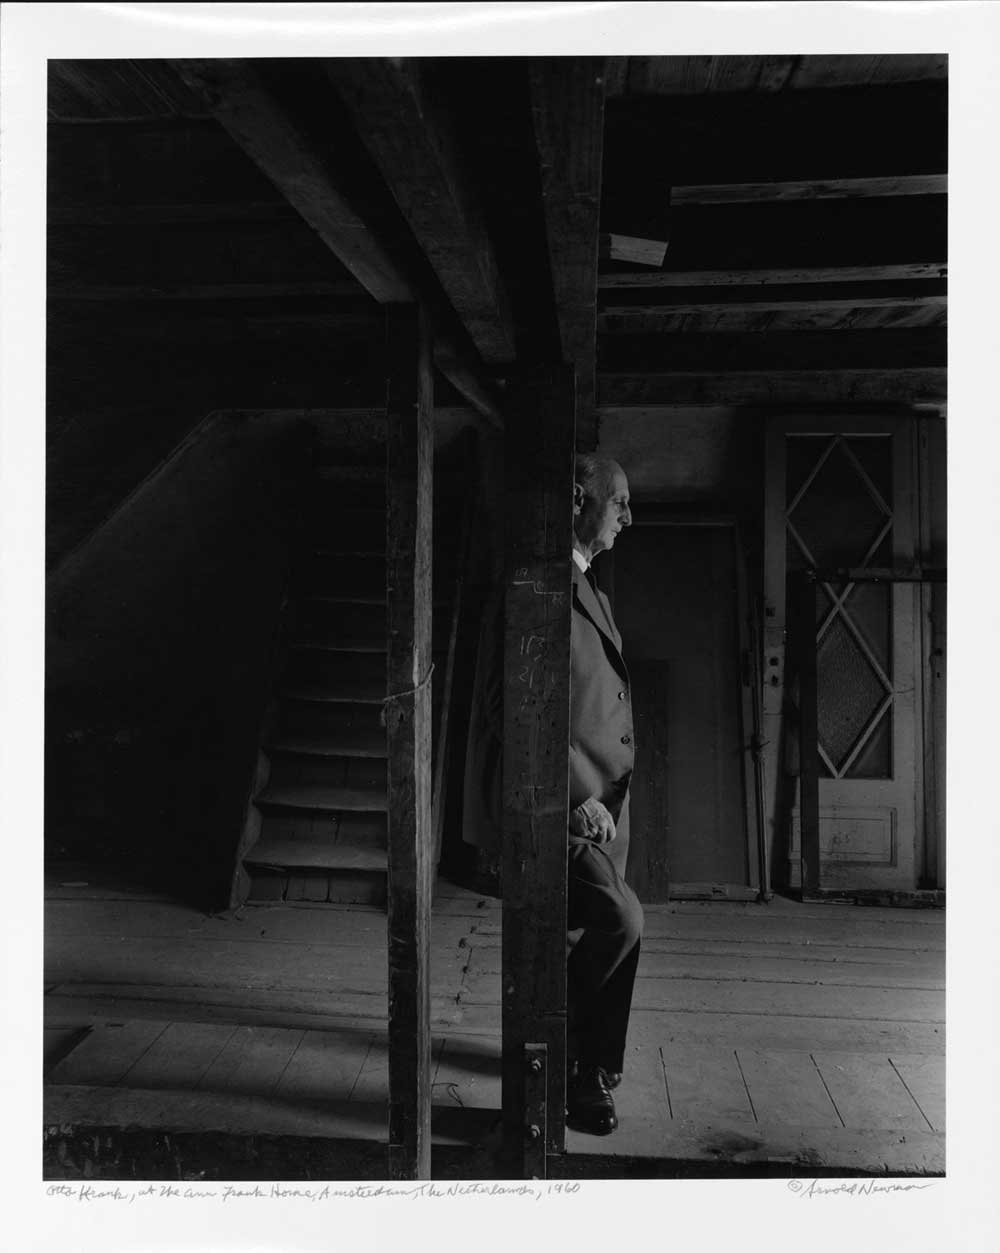 Otto Frank in Amsterdam after the war